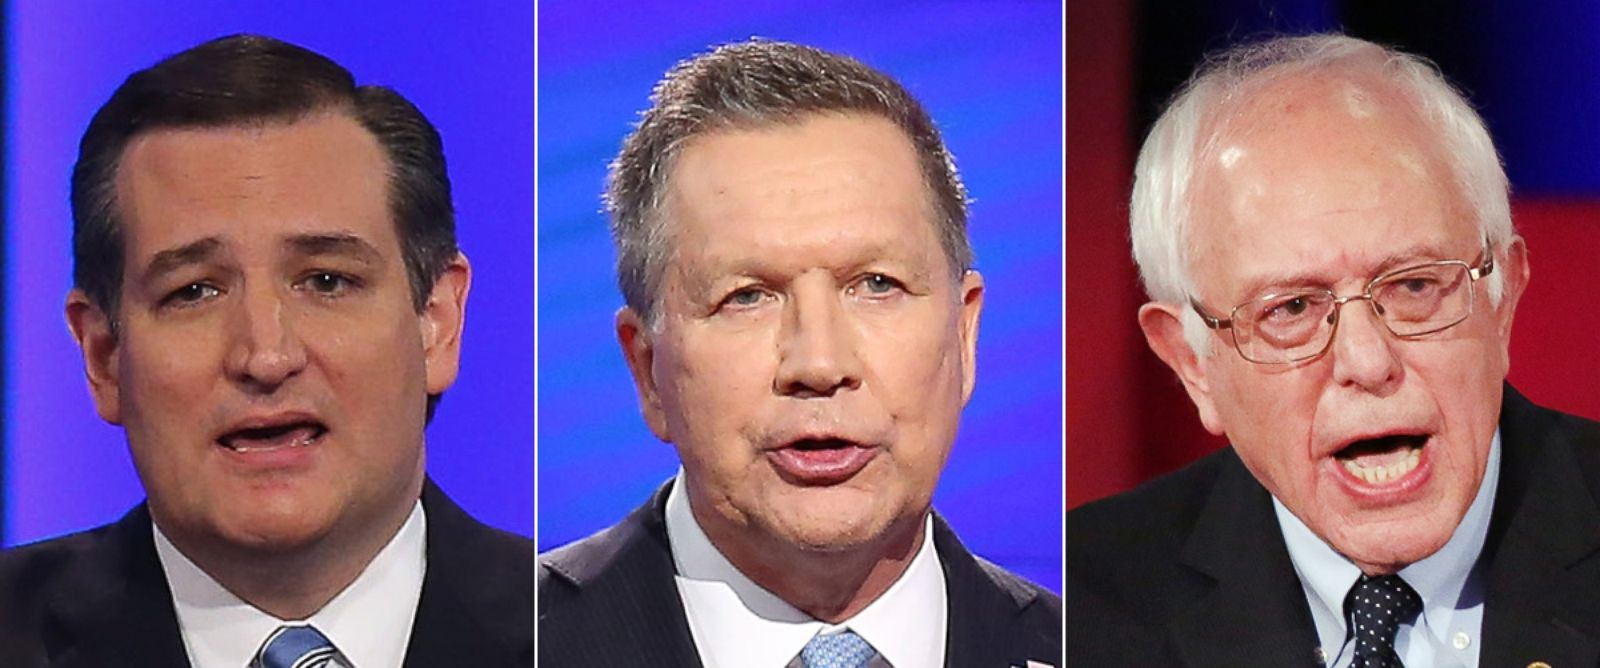 PHOTO: Republican presidential candidate Sen. Ted Cruz on Feb. 6, 2016 | Republican presidential candidate Ohio Gov. John Kasich on March 10, 2016 | Democratic presidential candidate Senator Bernie Sanders on Jan. 17, 2016.